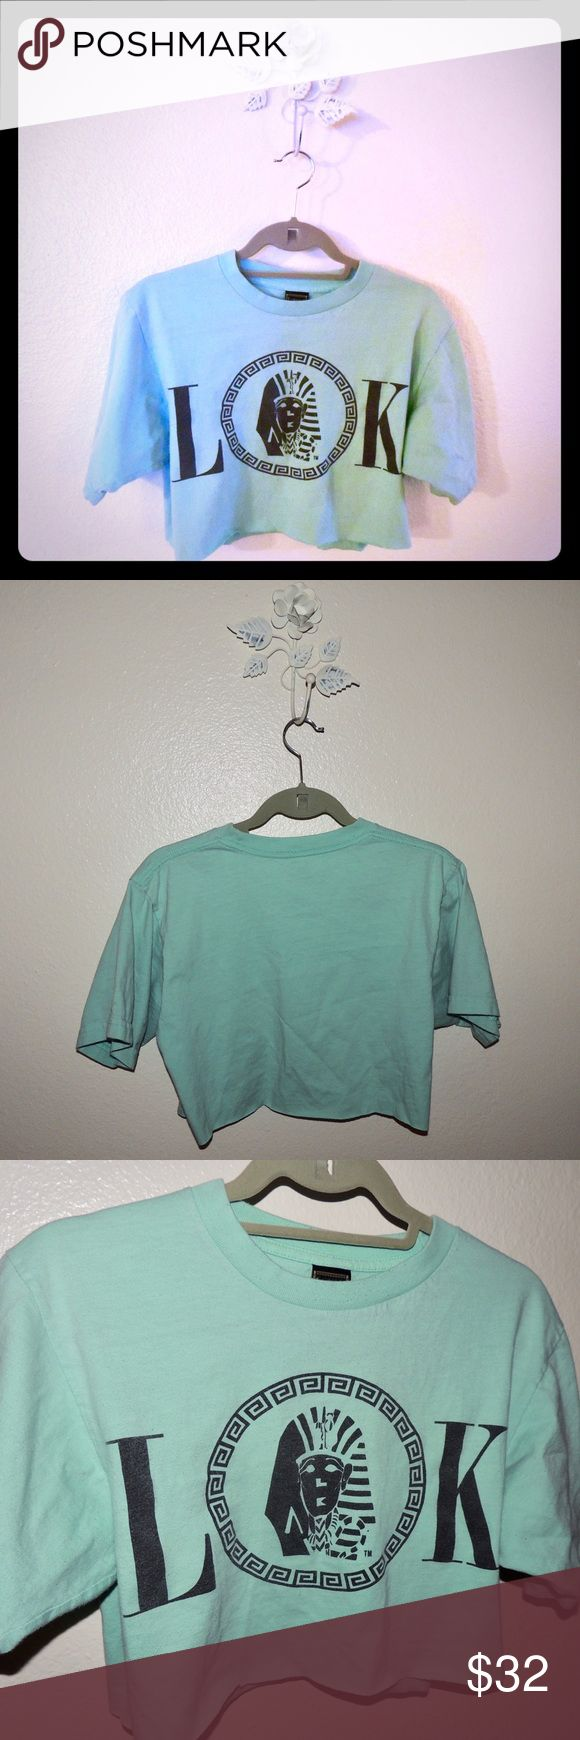 Last Kings mint green crop top by TYGA Size medium last kings mint green crop top with black logo. Great color! Perfect for a casual day or dress up for a concert. Nike used for search purposes only thanks 🤗 Nike Tops